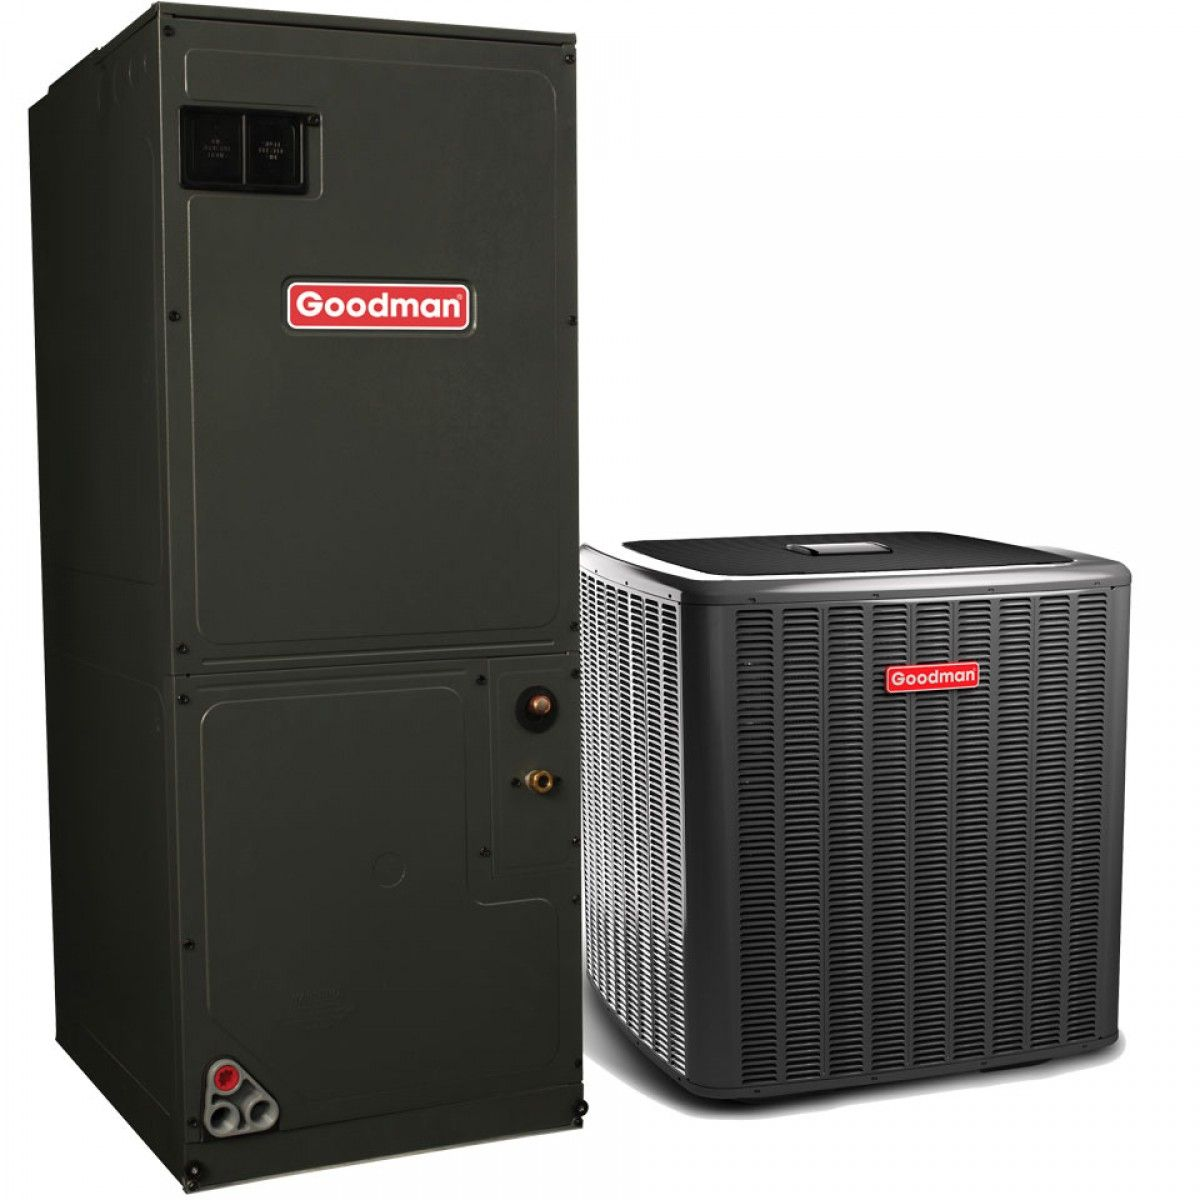 Goodman 3 Ton 16 Seer Variable Speed Air Conditioning